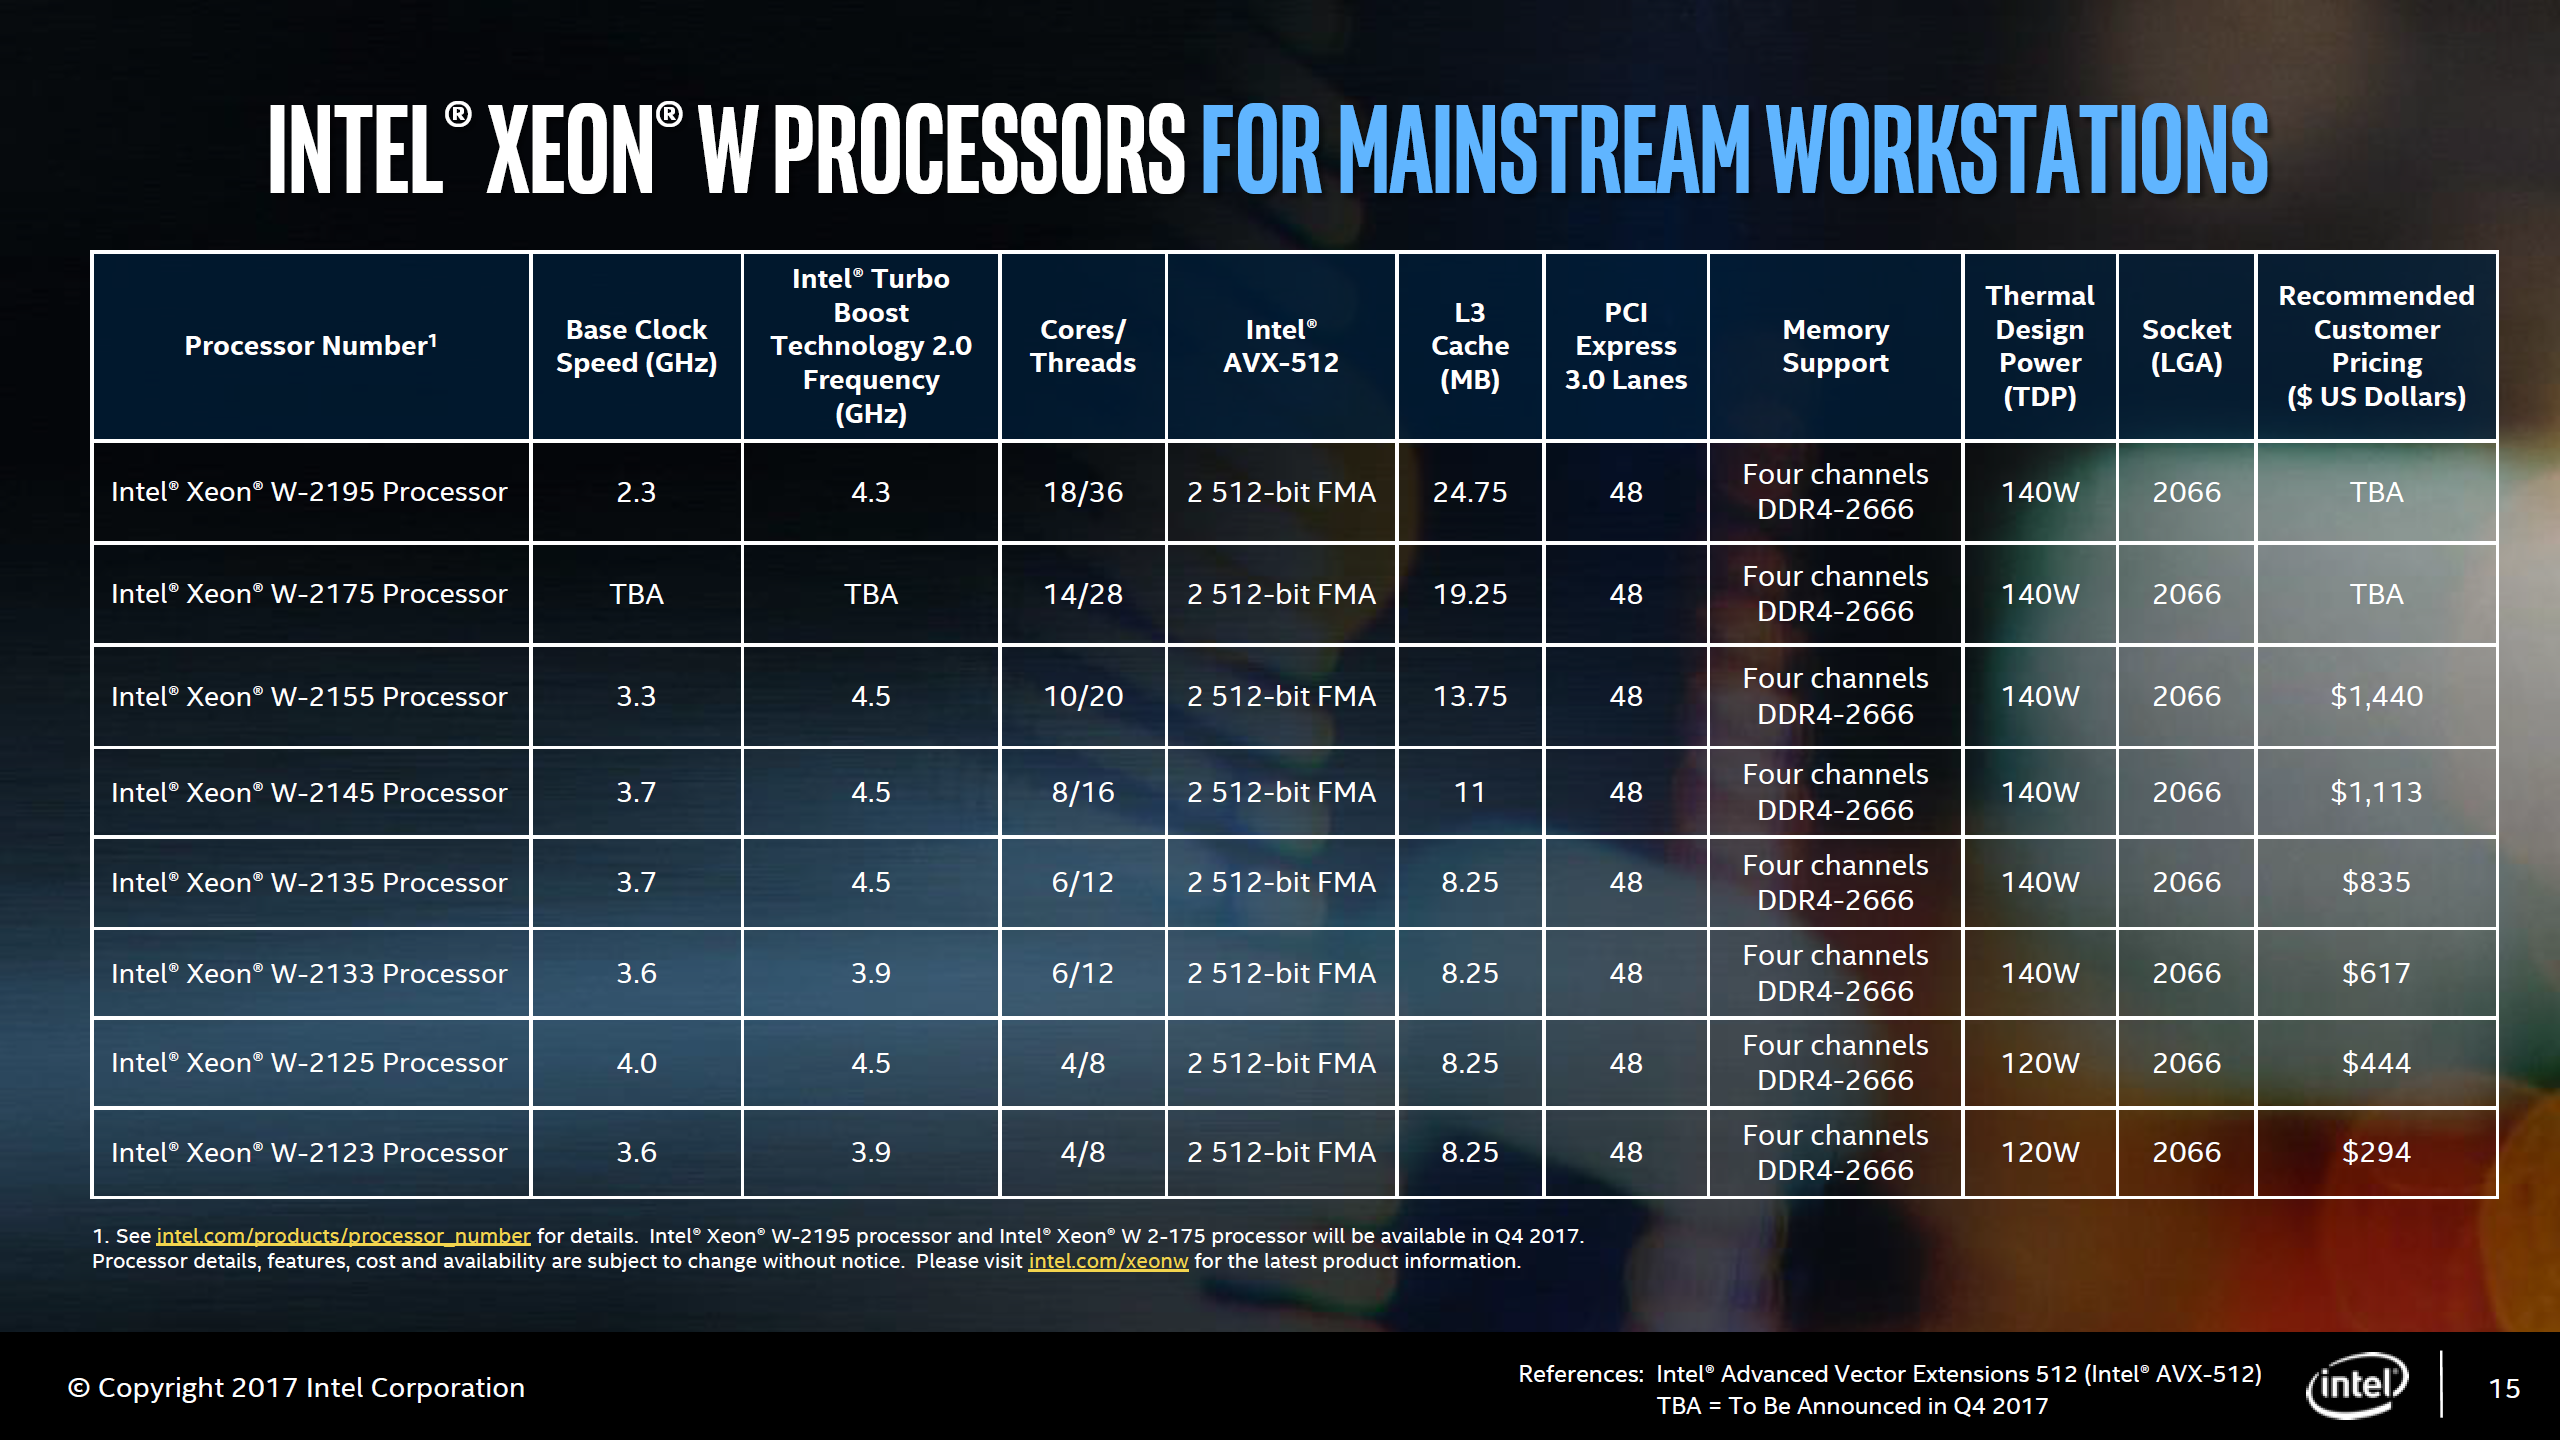 Intel Xeon W Workstation Processor Family With Up To 18 ...